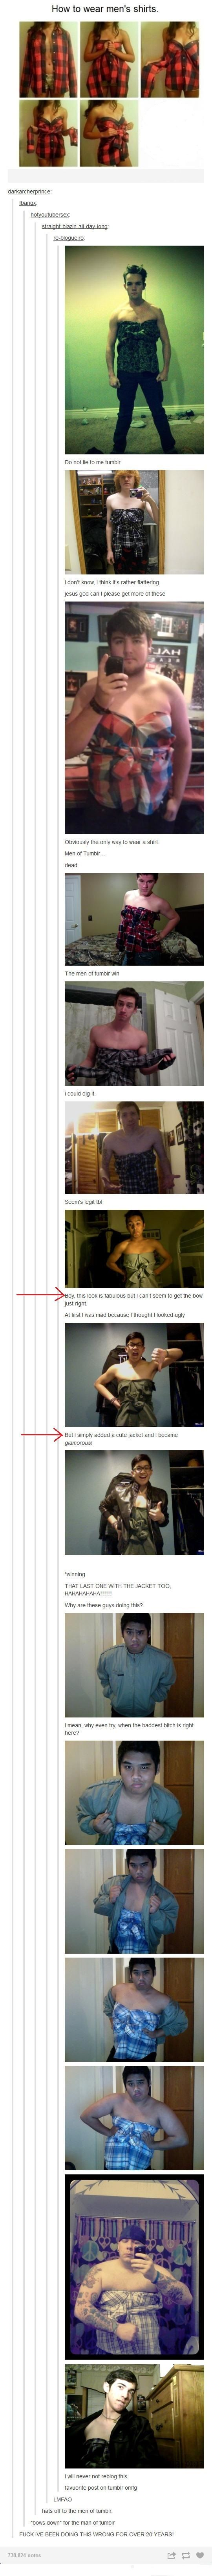 A Girl Posted 'How To Wear Men's Shirts?' On Tumblr, How The Men On Tumblr Reacts To This is Freaking Awesome.